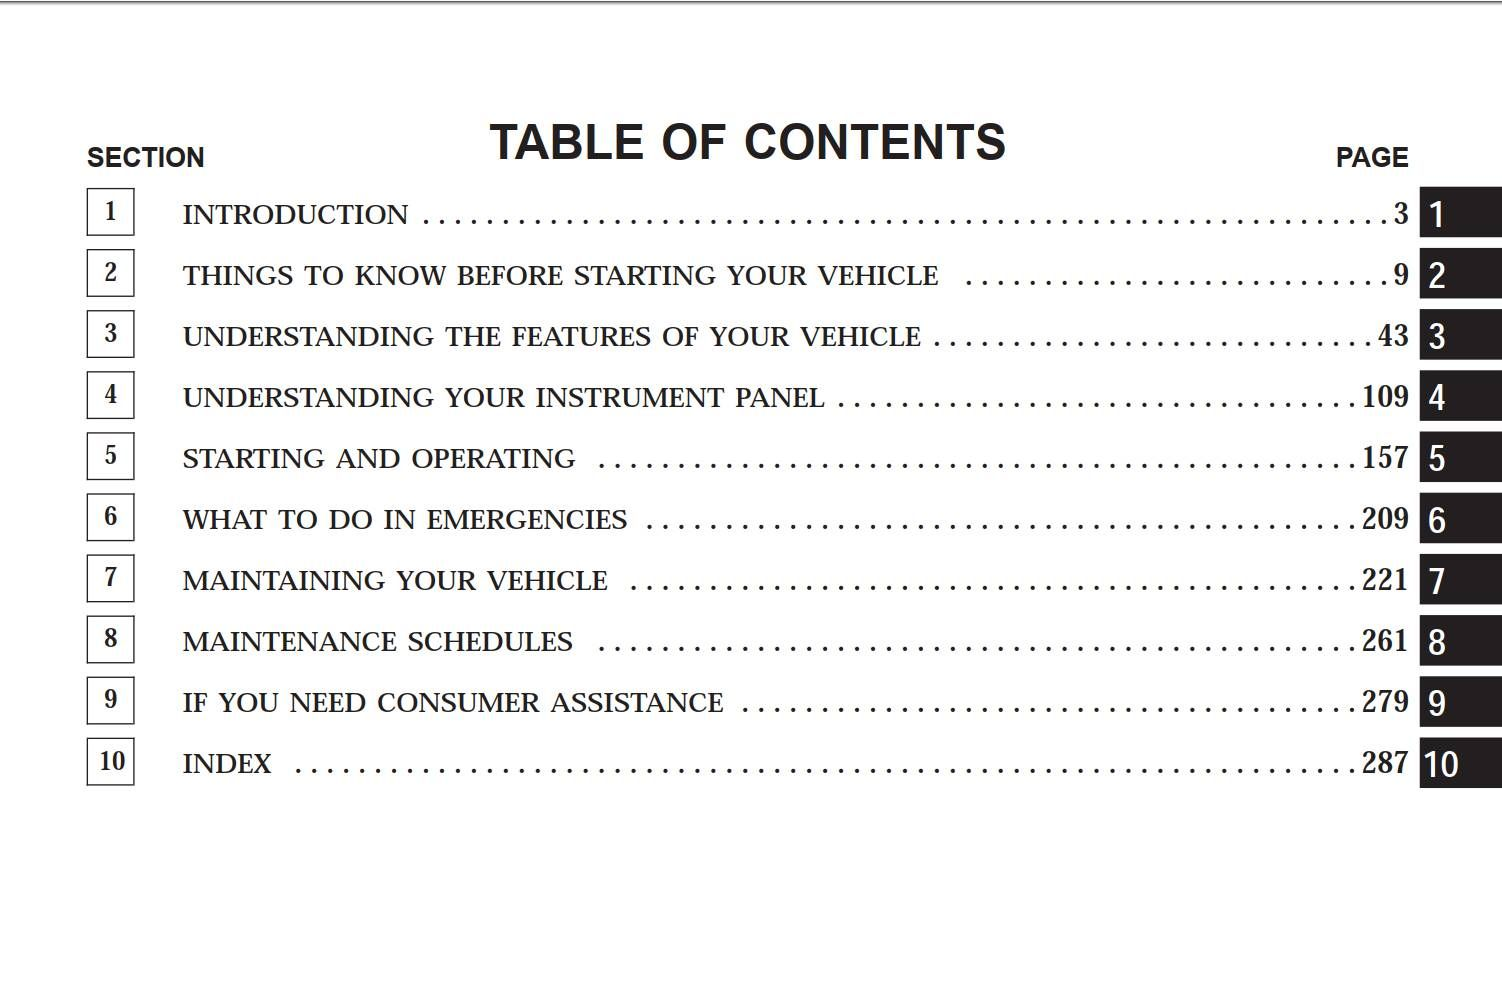 Jeep Wrangler 2004 Owner S Manual Has Been Published On Procarmanuals Com Https Procarmanuals Com Jeep Wrangler 2004 Ow Jeep Wrangler Owners Manuals Wrangler